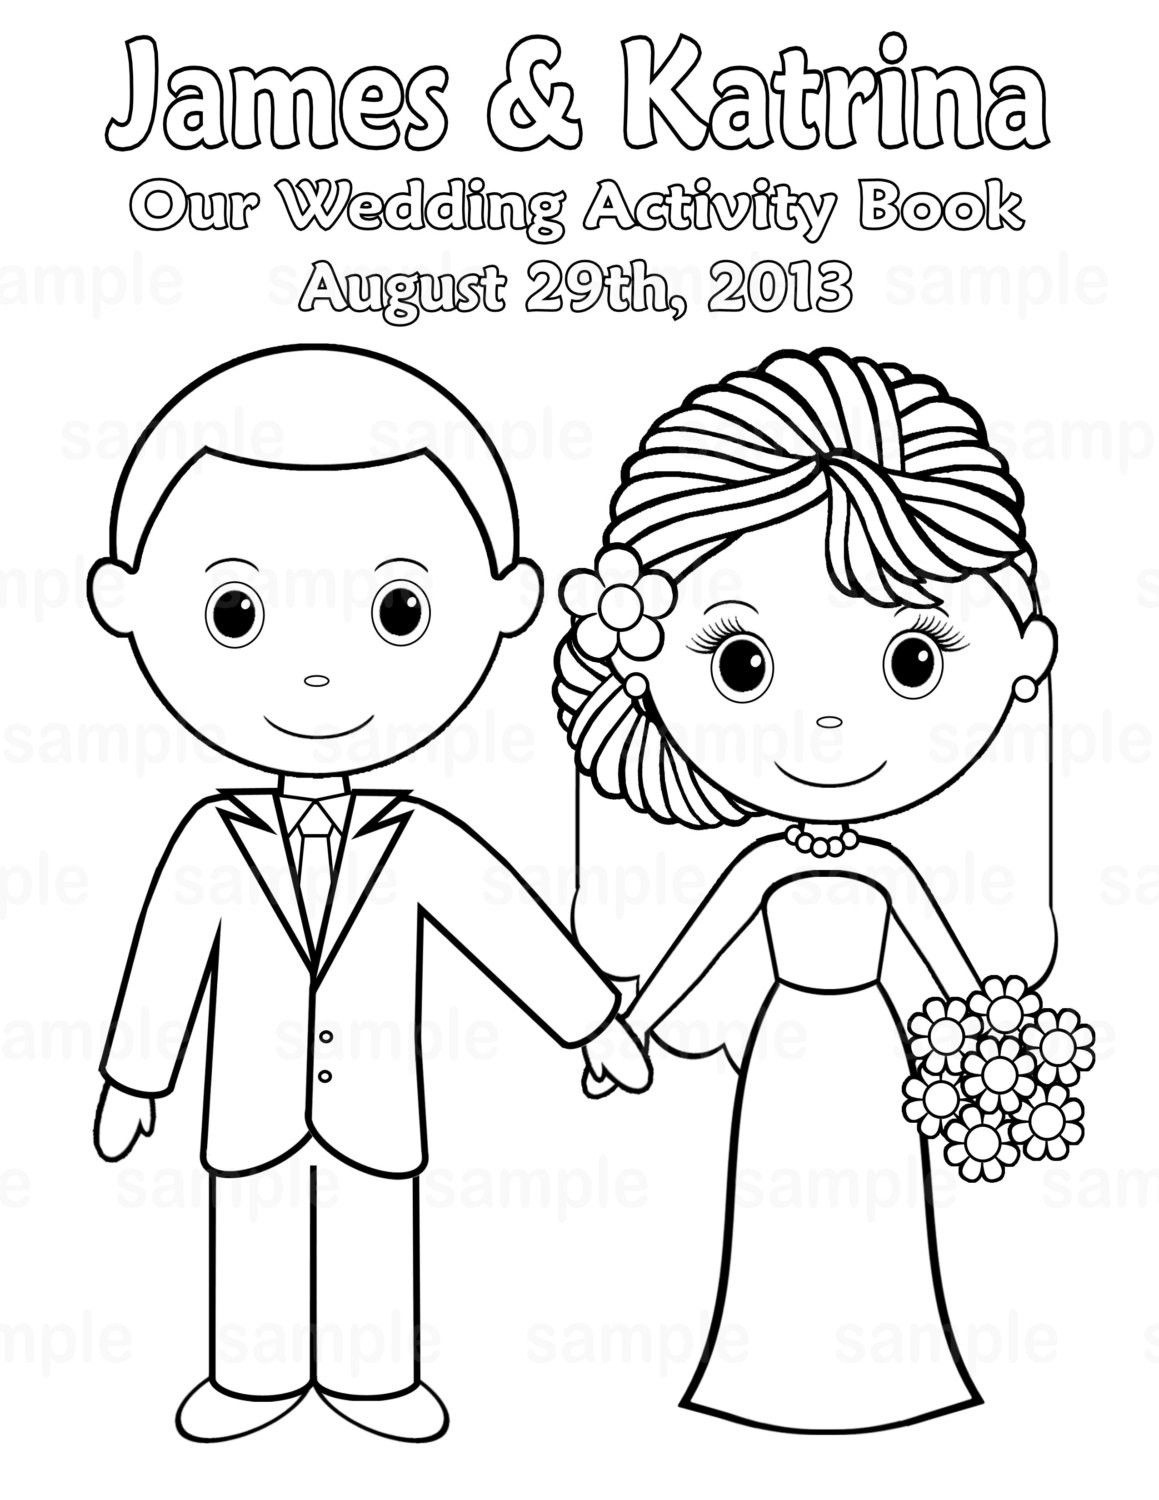 Free Printable Wedding Coloring Pages   Free Printable Wedding - Wedding Coloring Book Free Printable